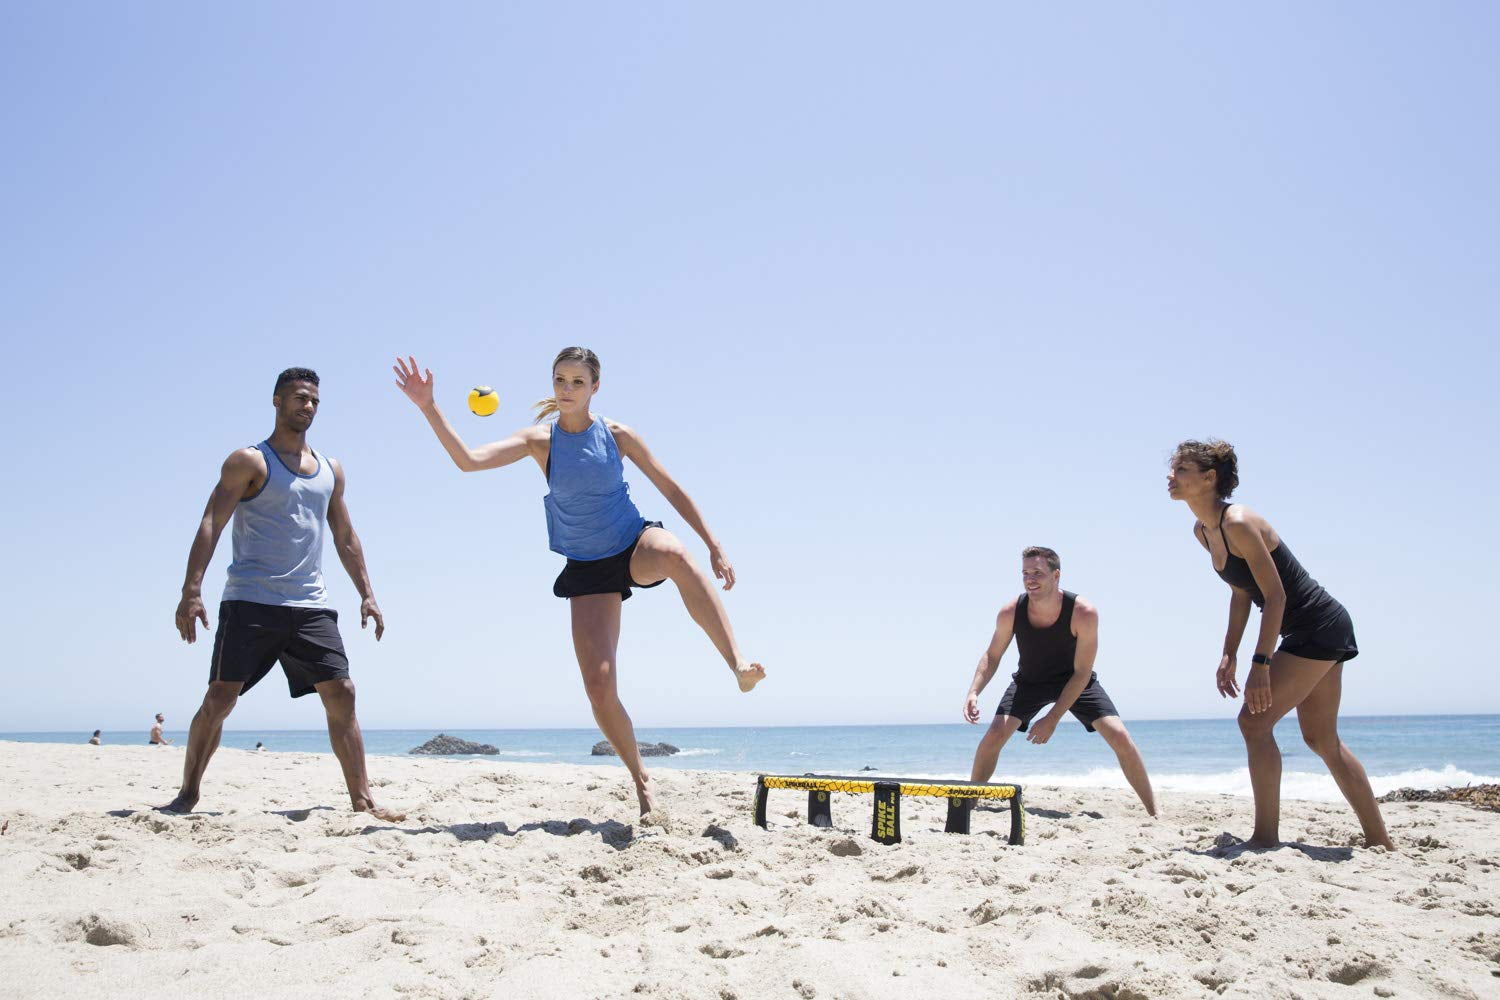 People playing Spikeball on the beach